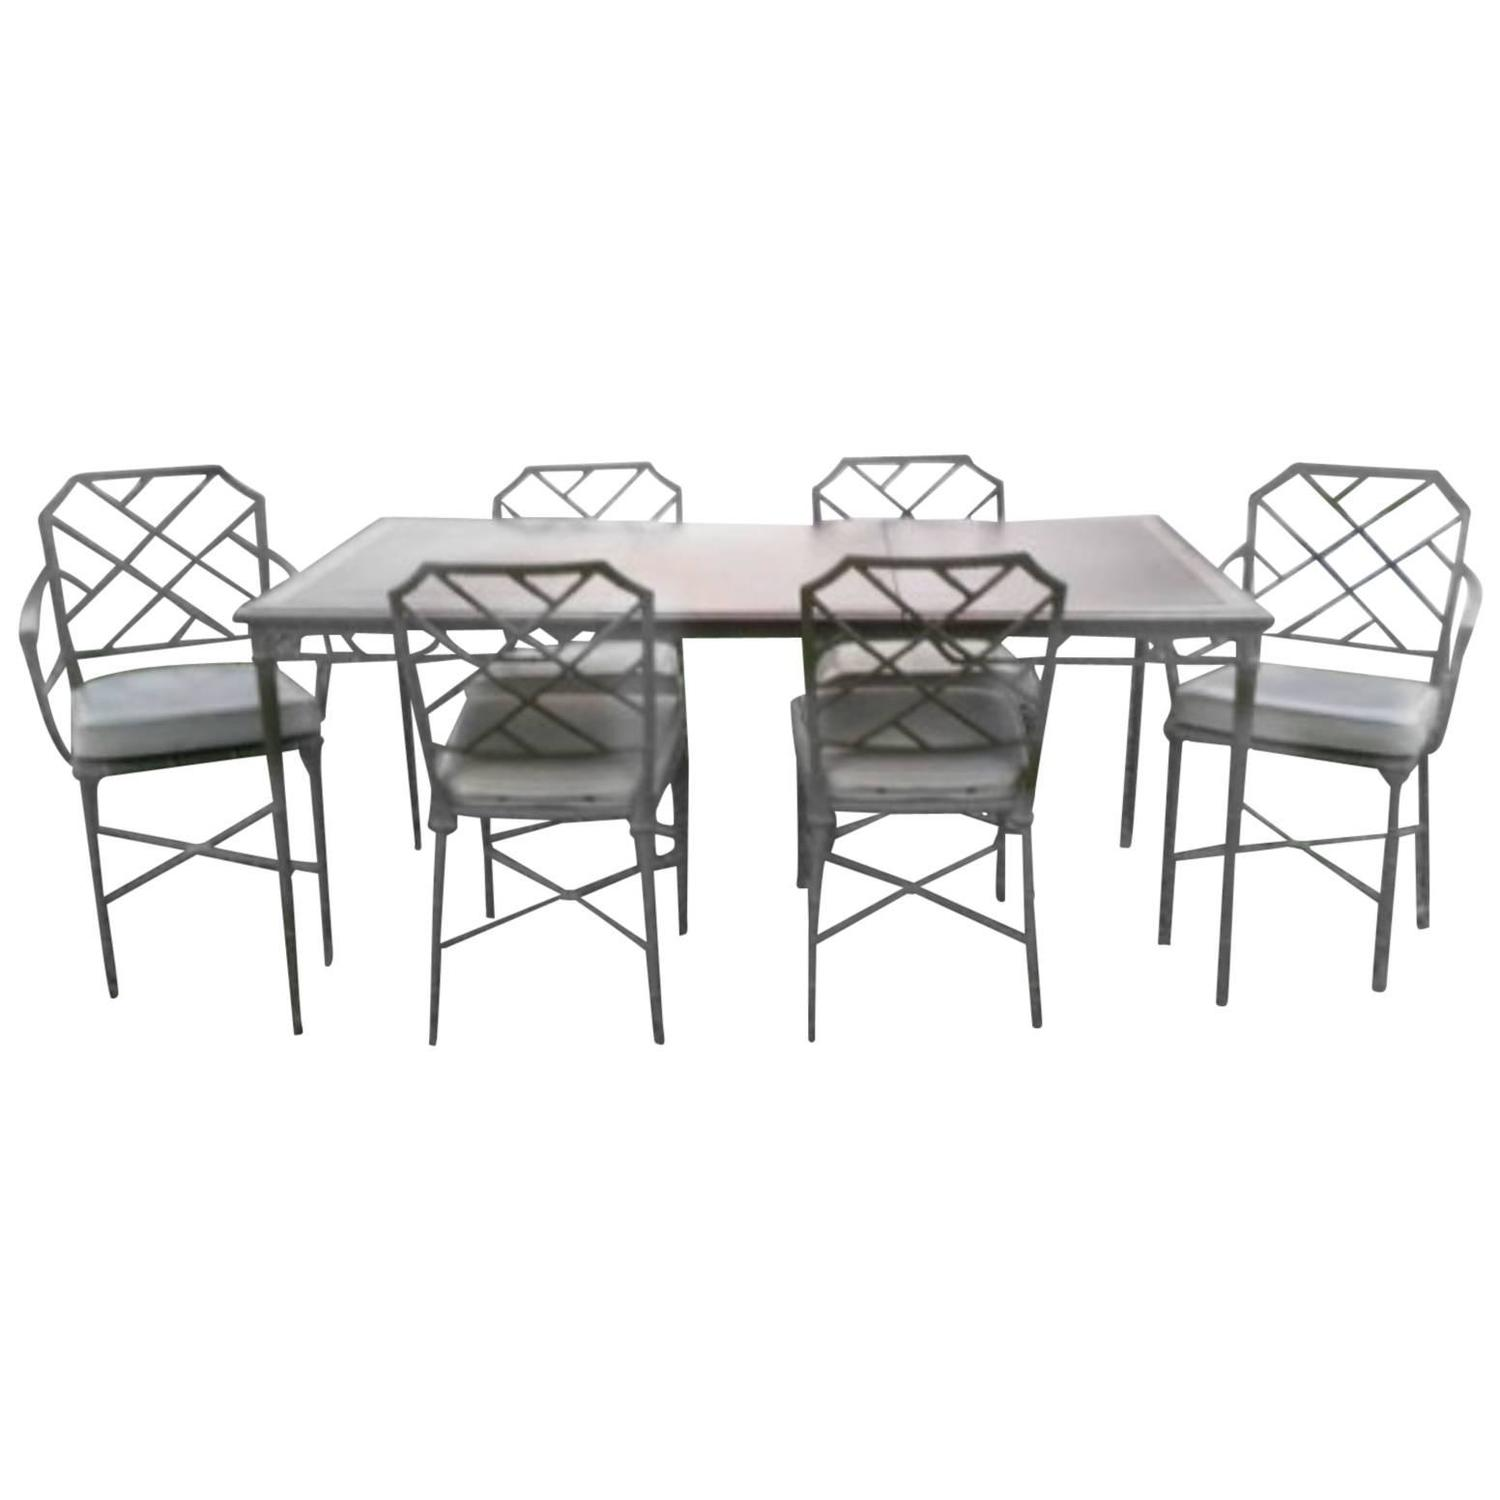 Brown Jordan Seven Piece Calcutta Faux Bamboo Patio Set of Dining